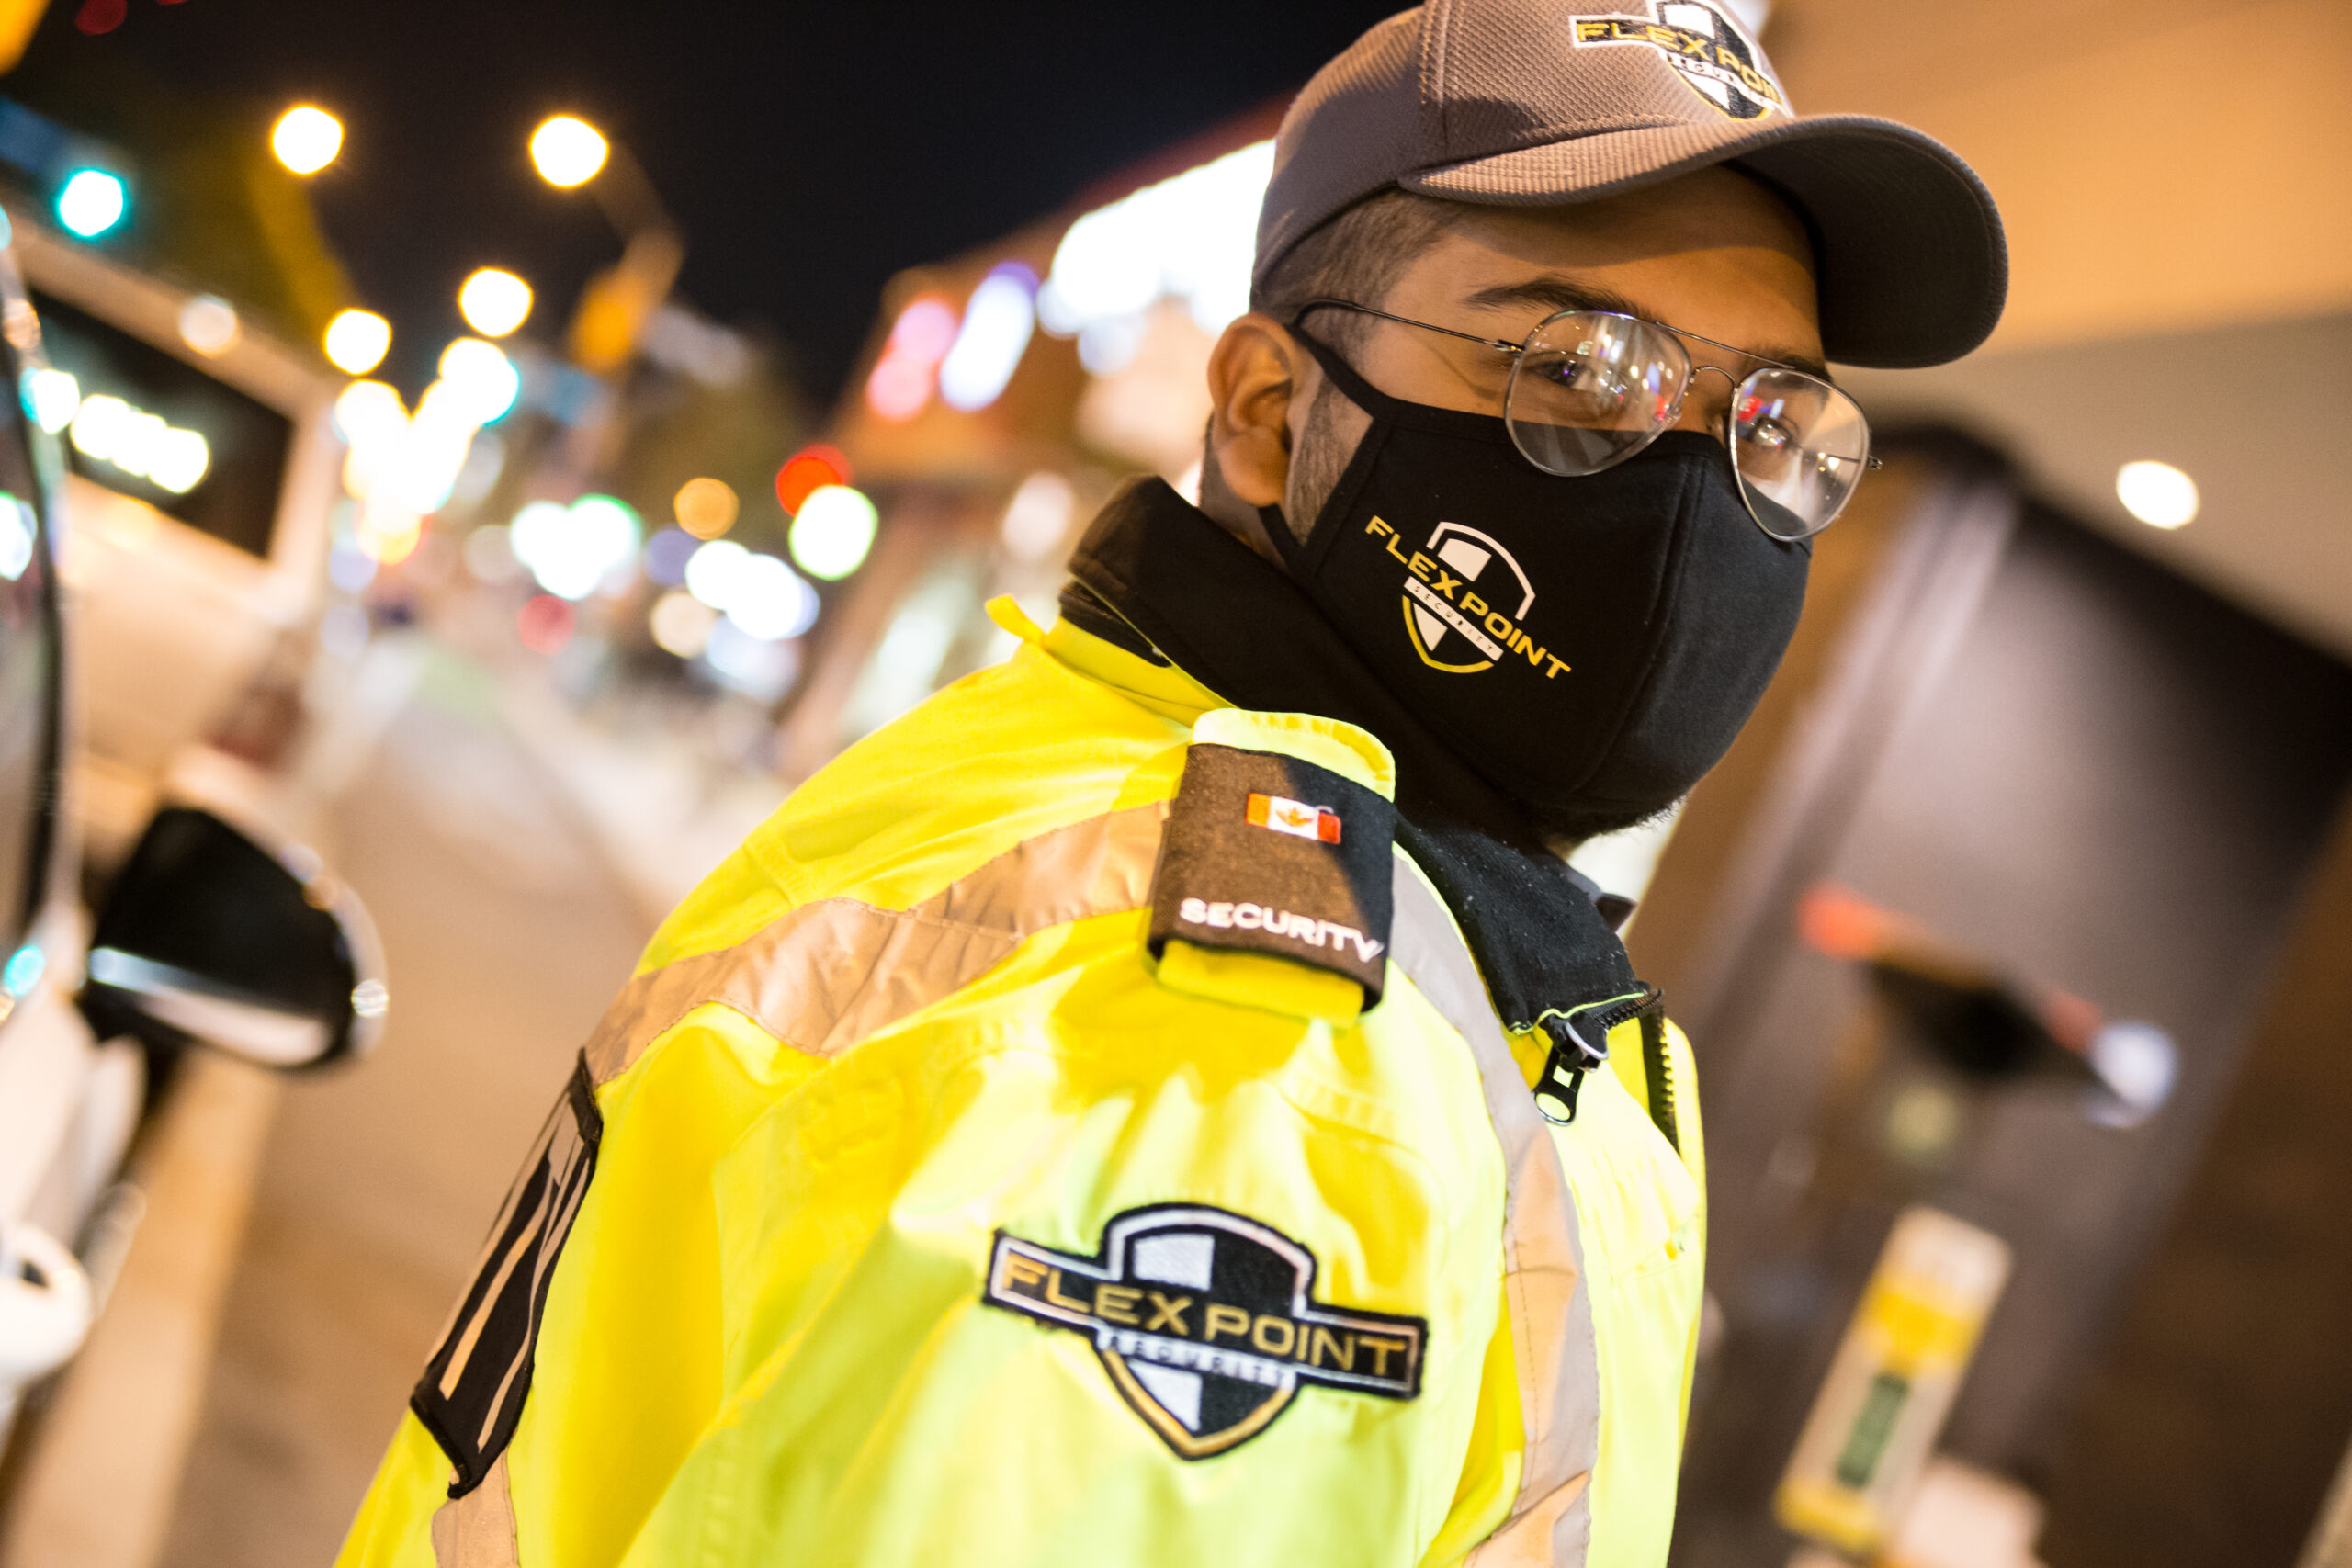 Male Flex Point Security guard wearing a branded hat, face mask and jacket while standing next to a company security vehicle in Toronto